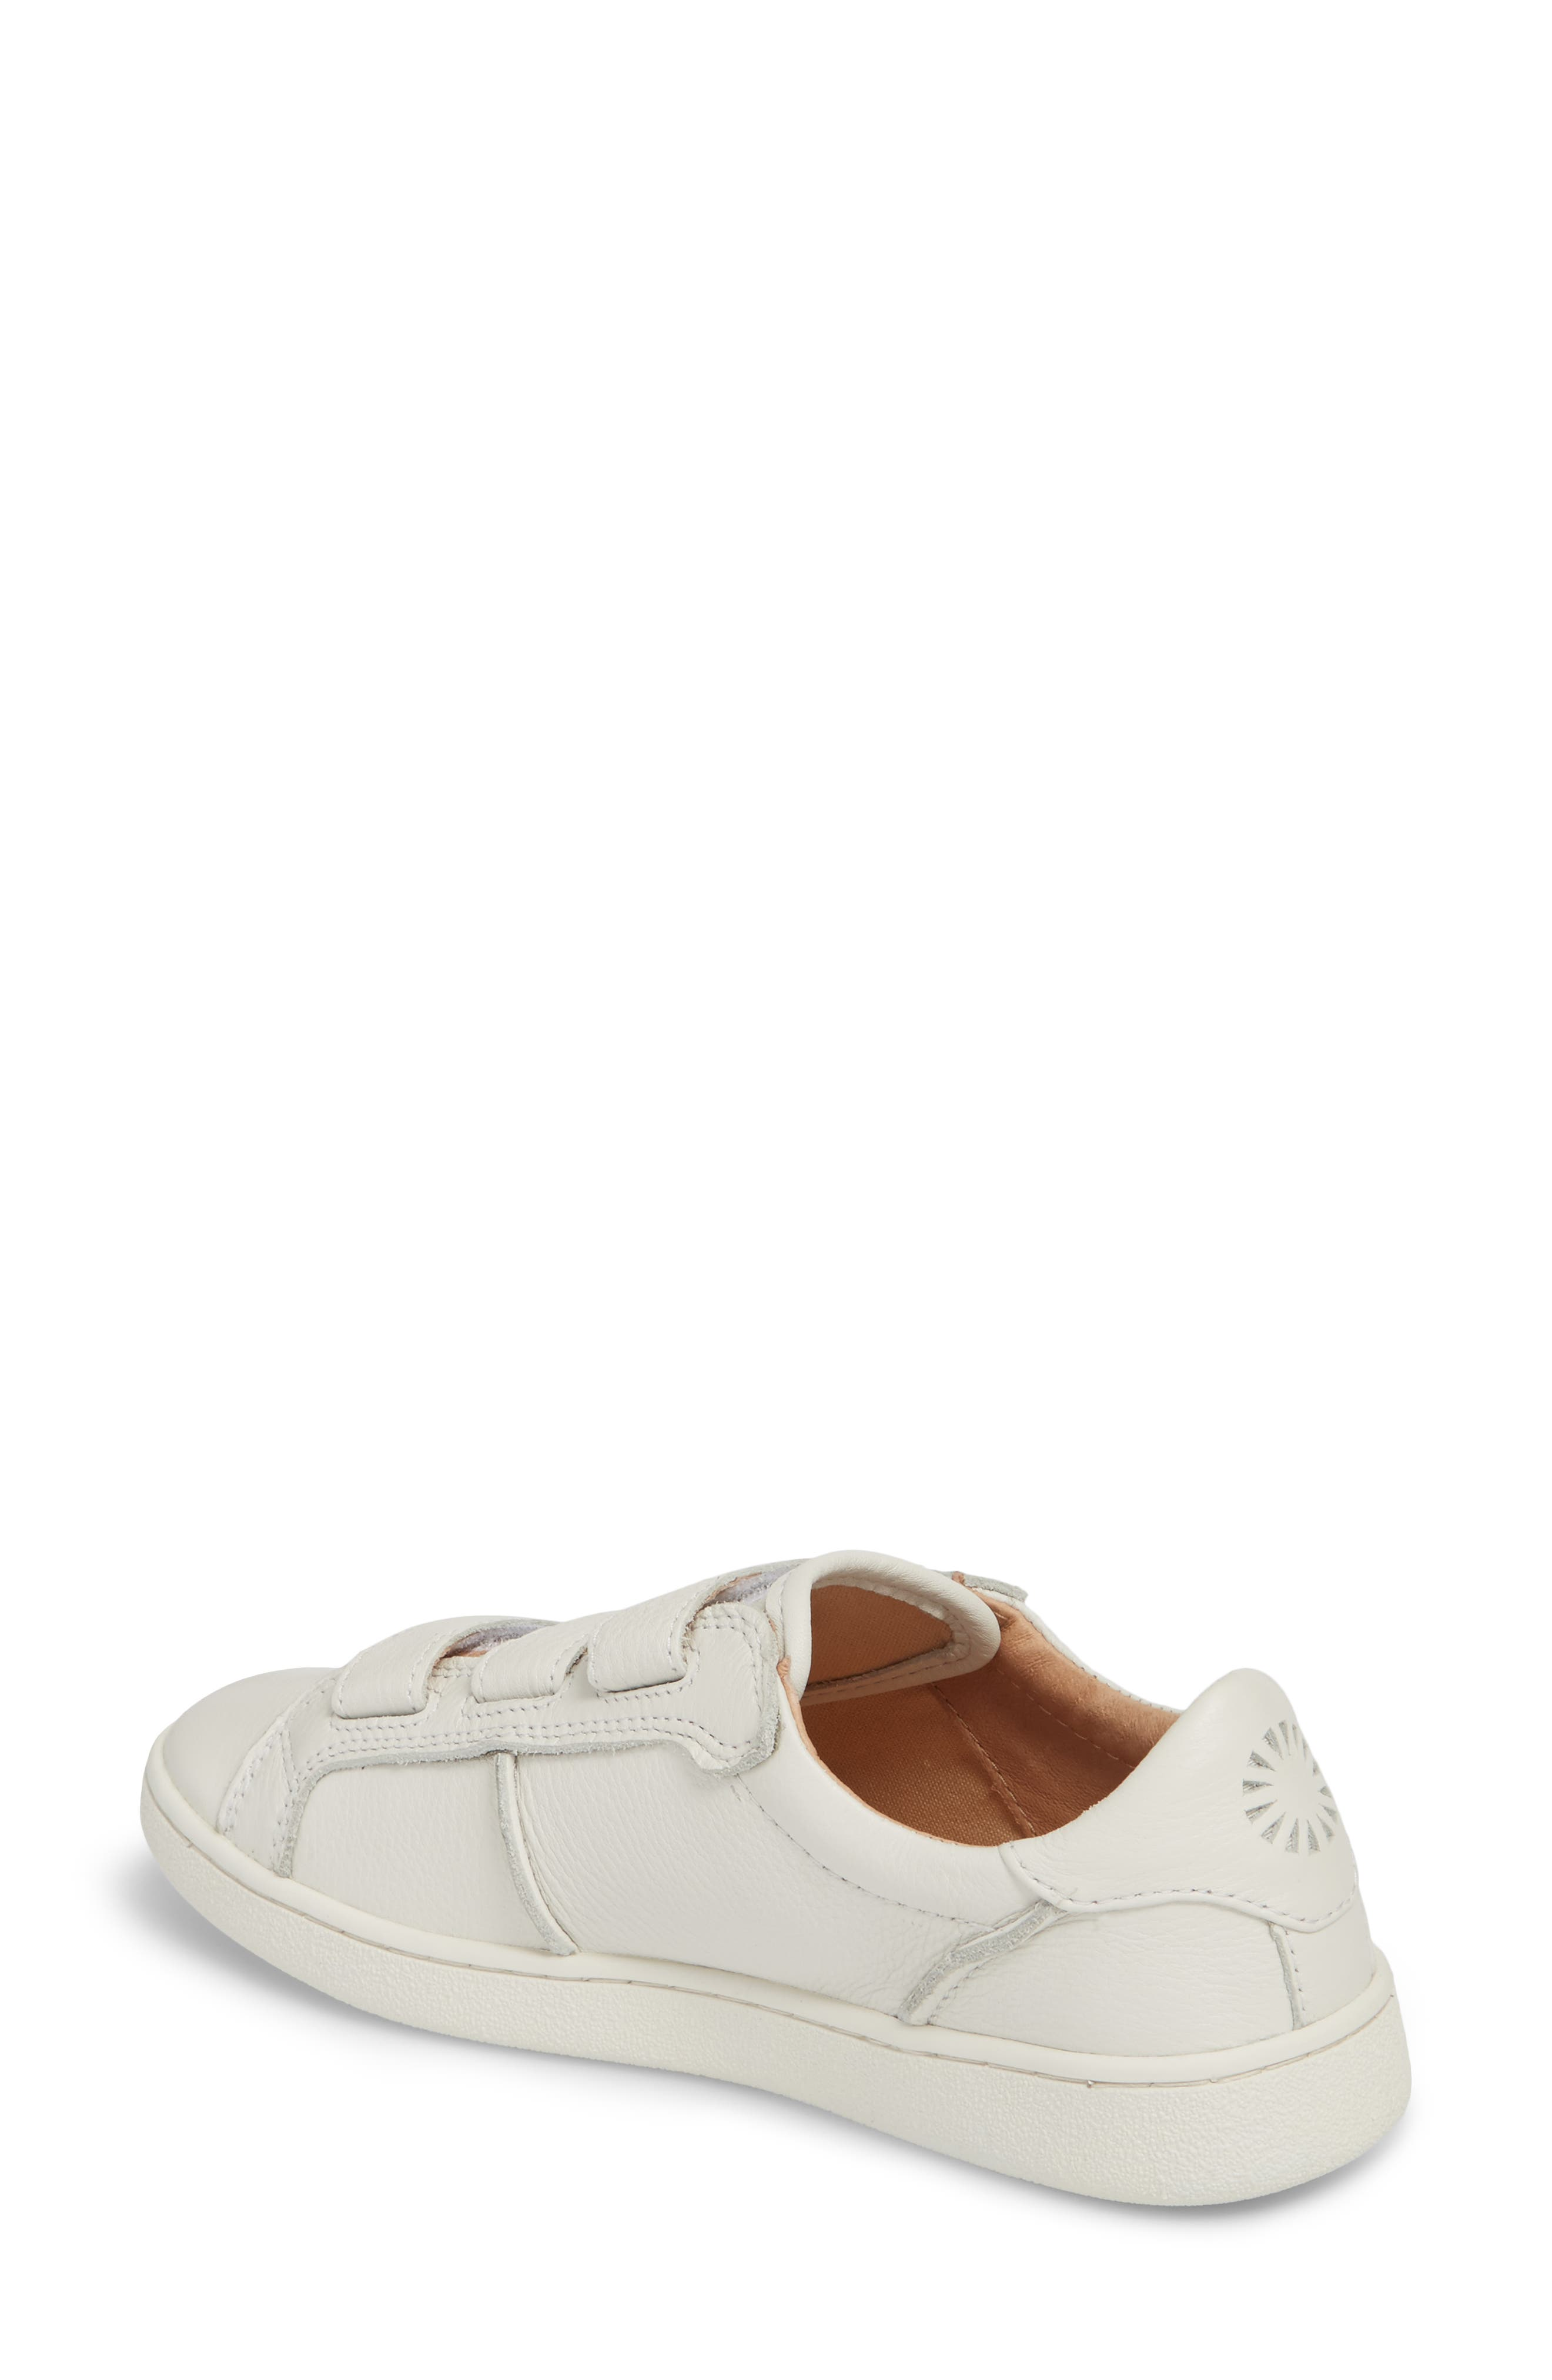 Alix Sneaker,                             Alternate thumbnail 2, color,                             White Leather